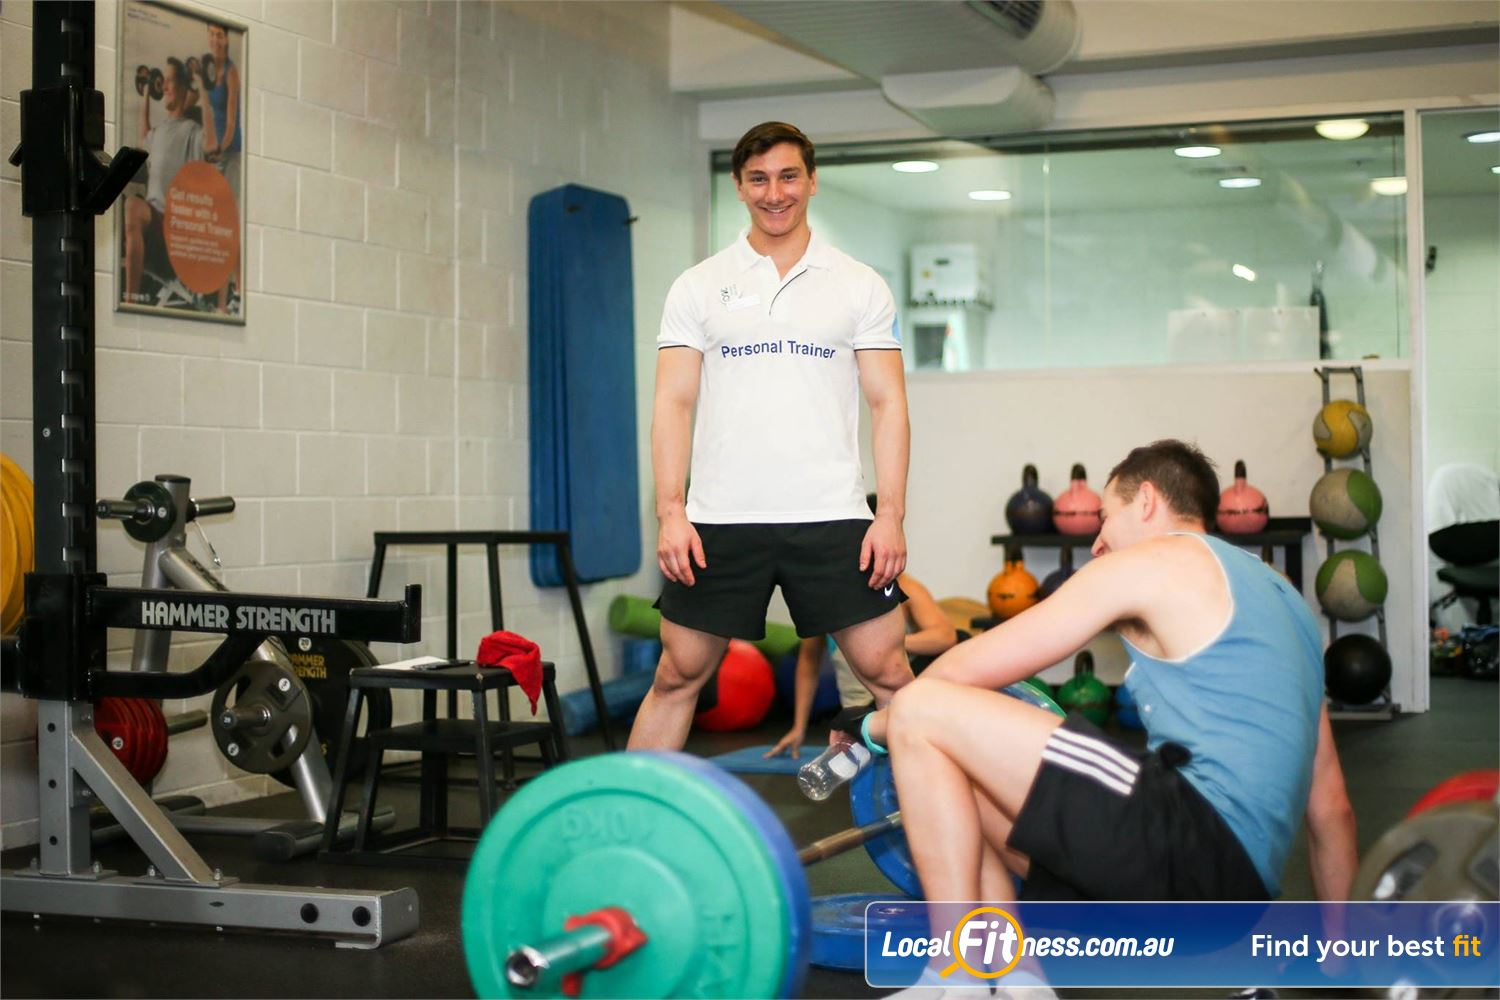 Cook and Phillip Park Aquatic and Fitness Centre Sydney Fully equipped free-weights training area.